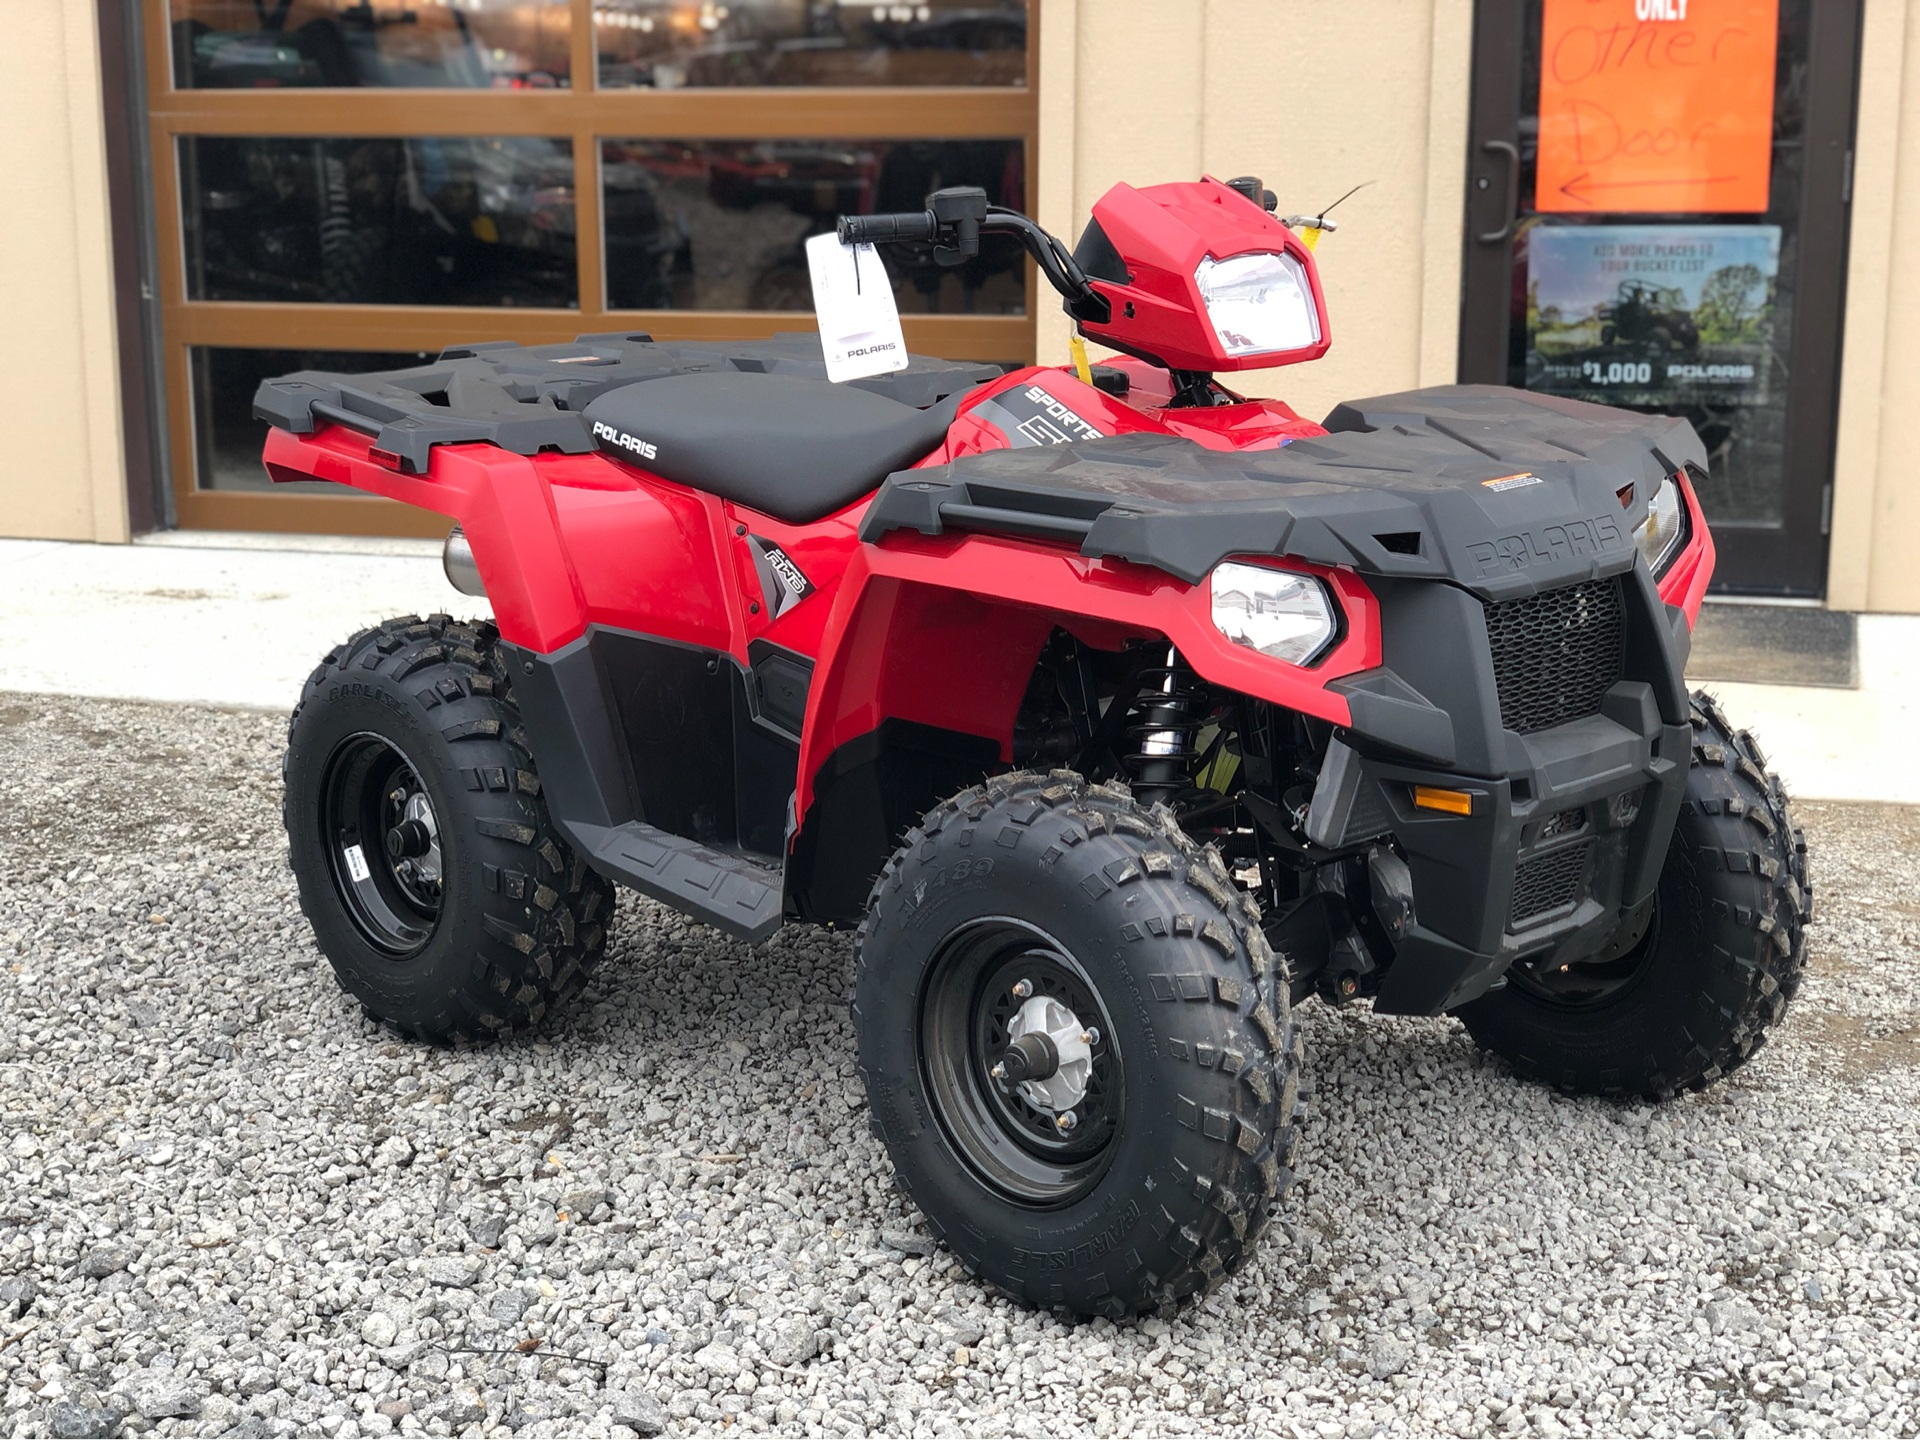 2020 Polaris Sportsman 570 in Attica, Indiana - Photo 1